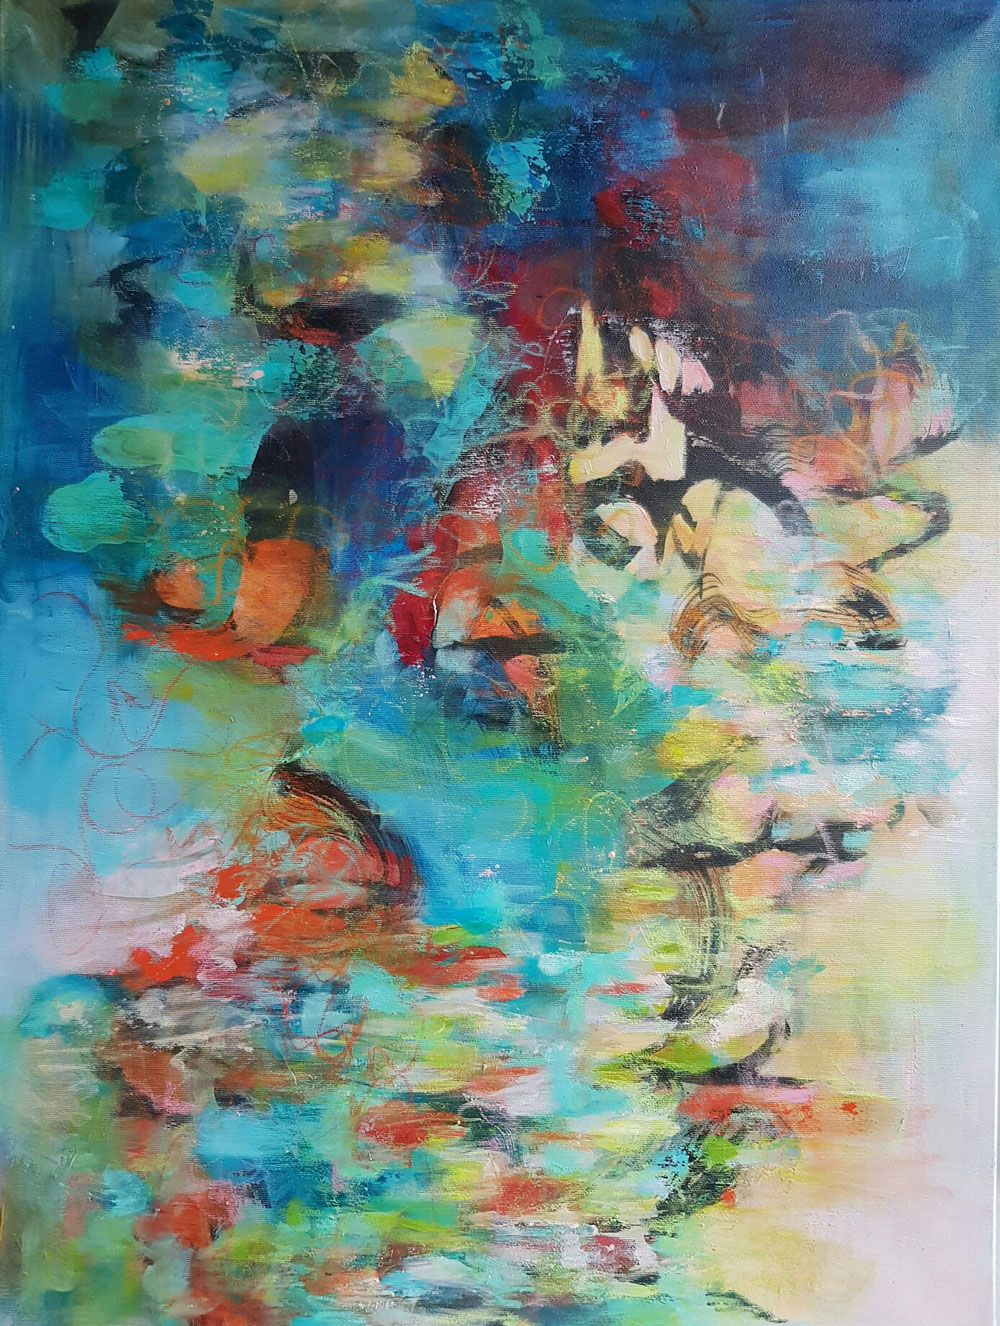 Secret waters, 80 x 60, mixed media on canvas / reserved / www.taidelainaamo.fi